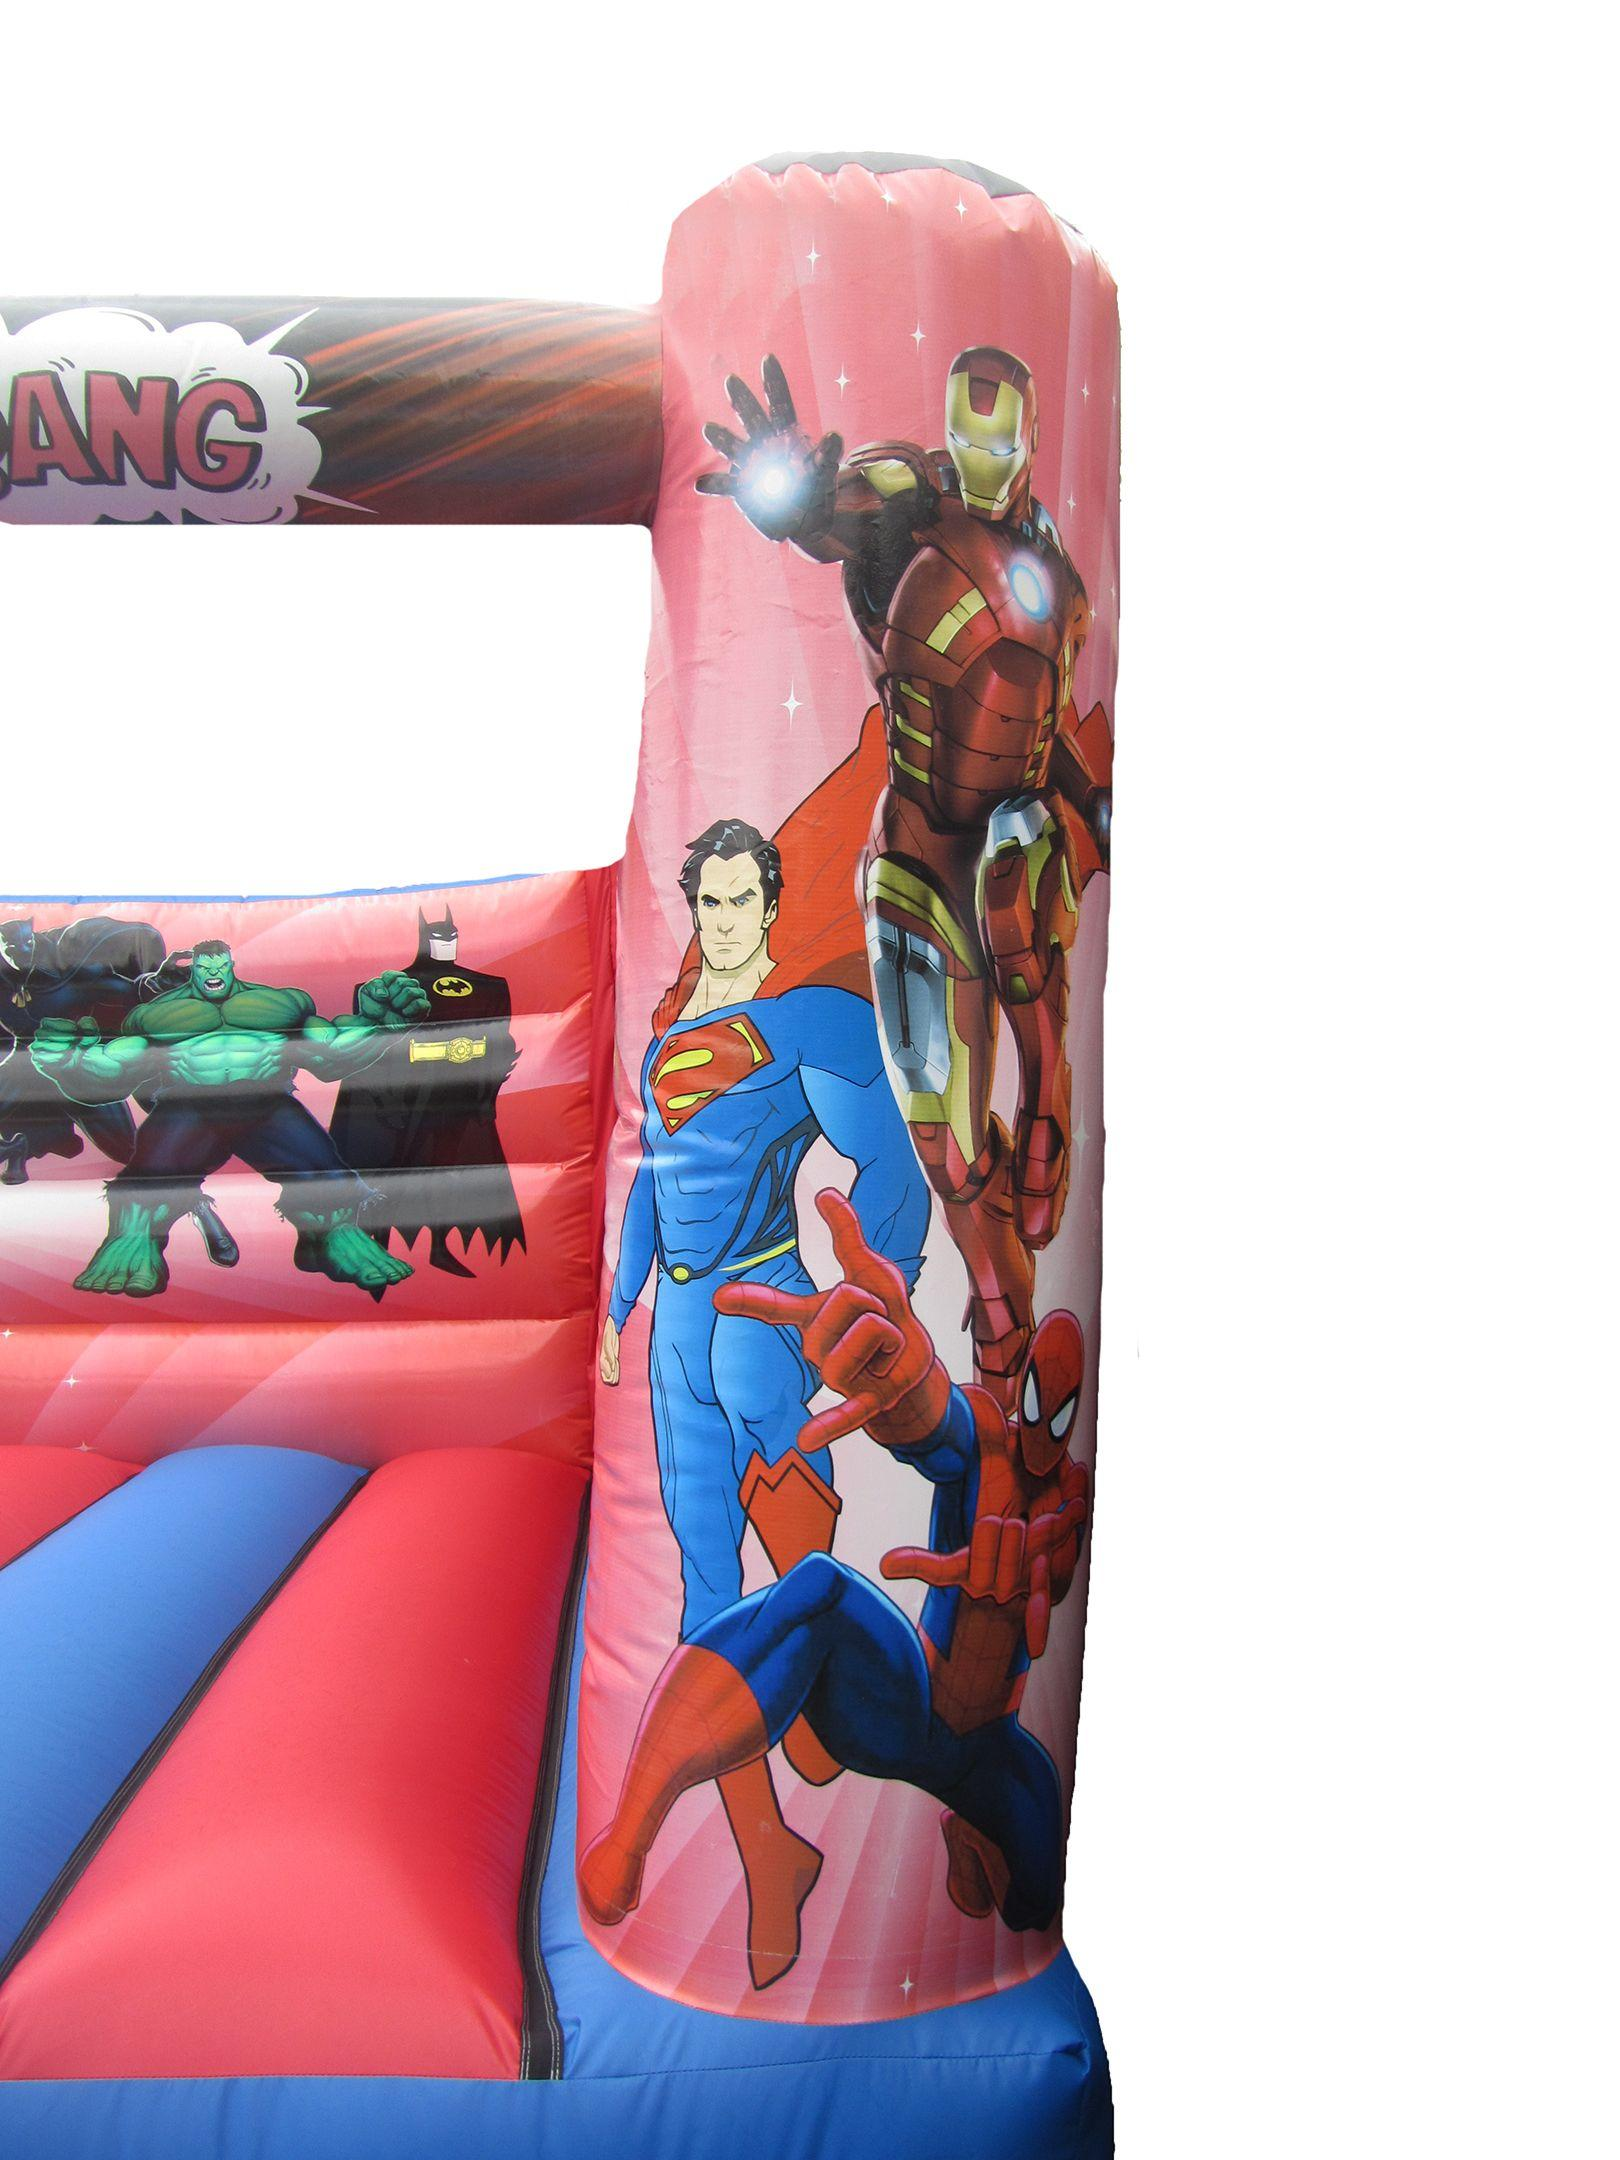 Digitally Printed Superhero Bouncy Castle Artwork